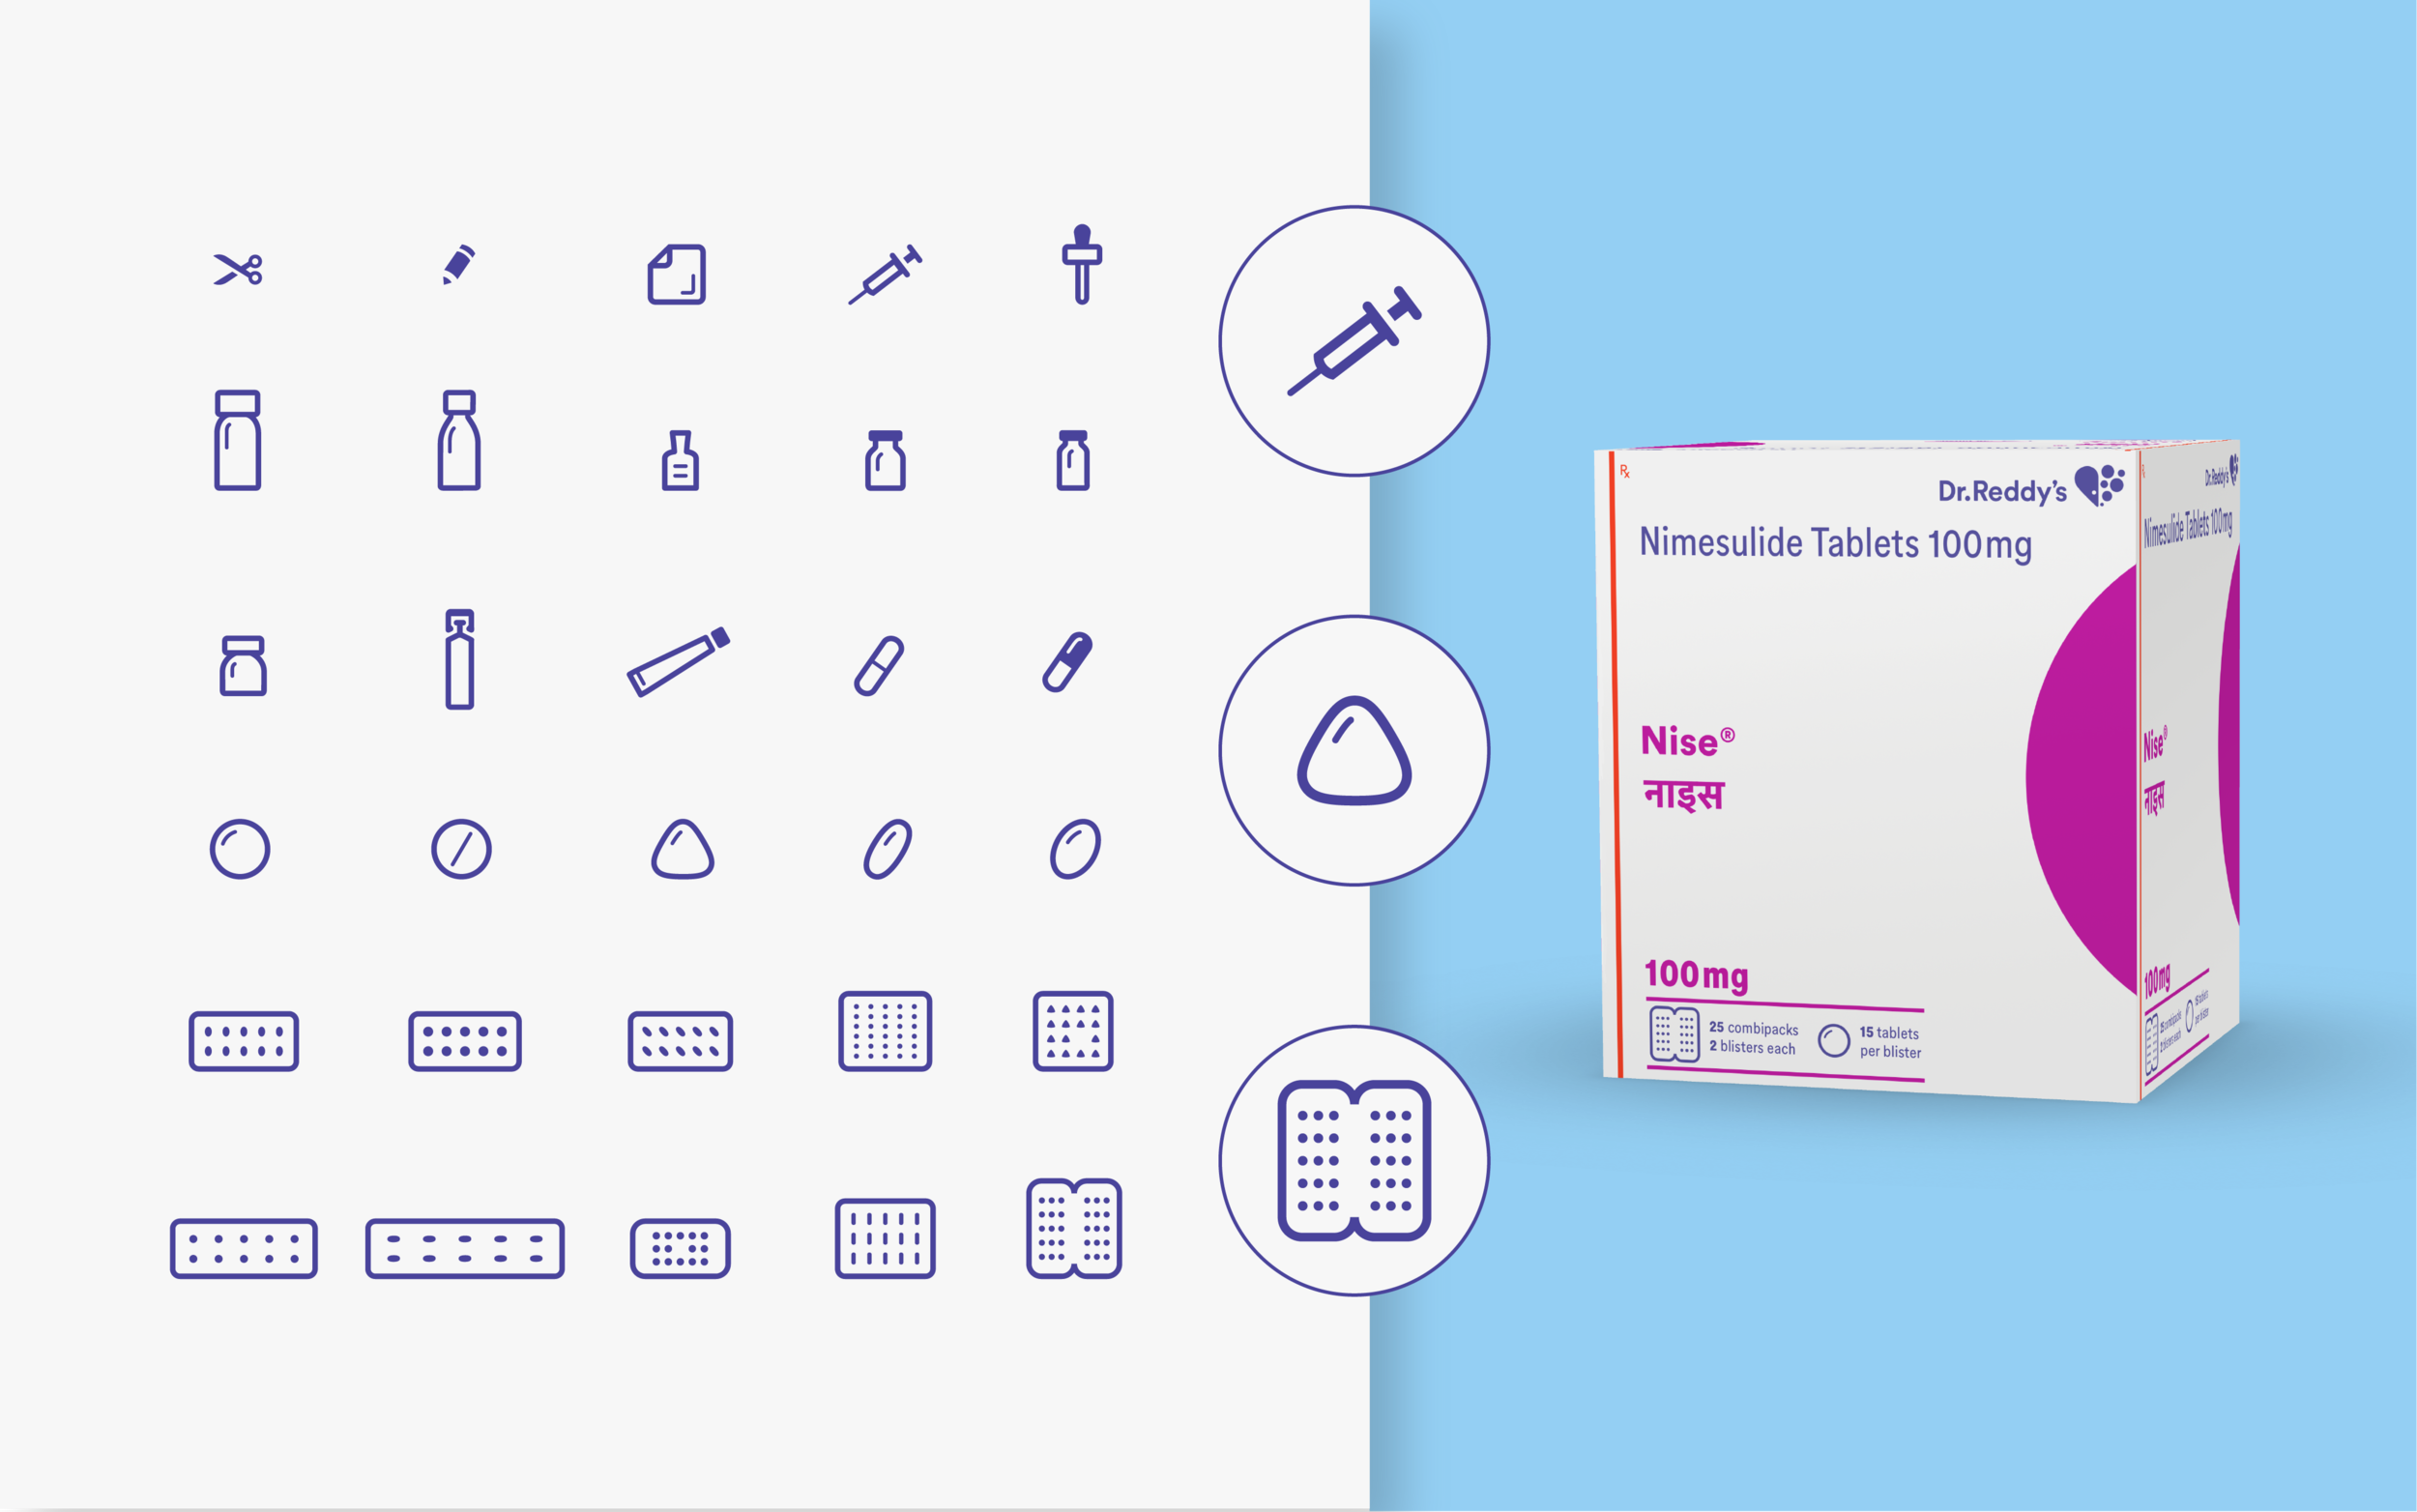 A new system of product icons helps users in product identification and understanding package contents.